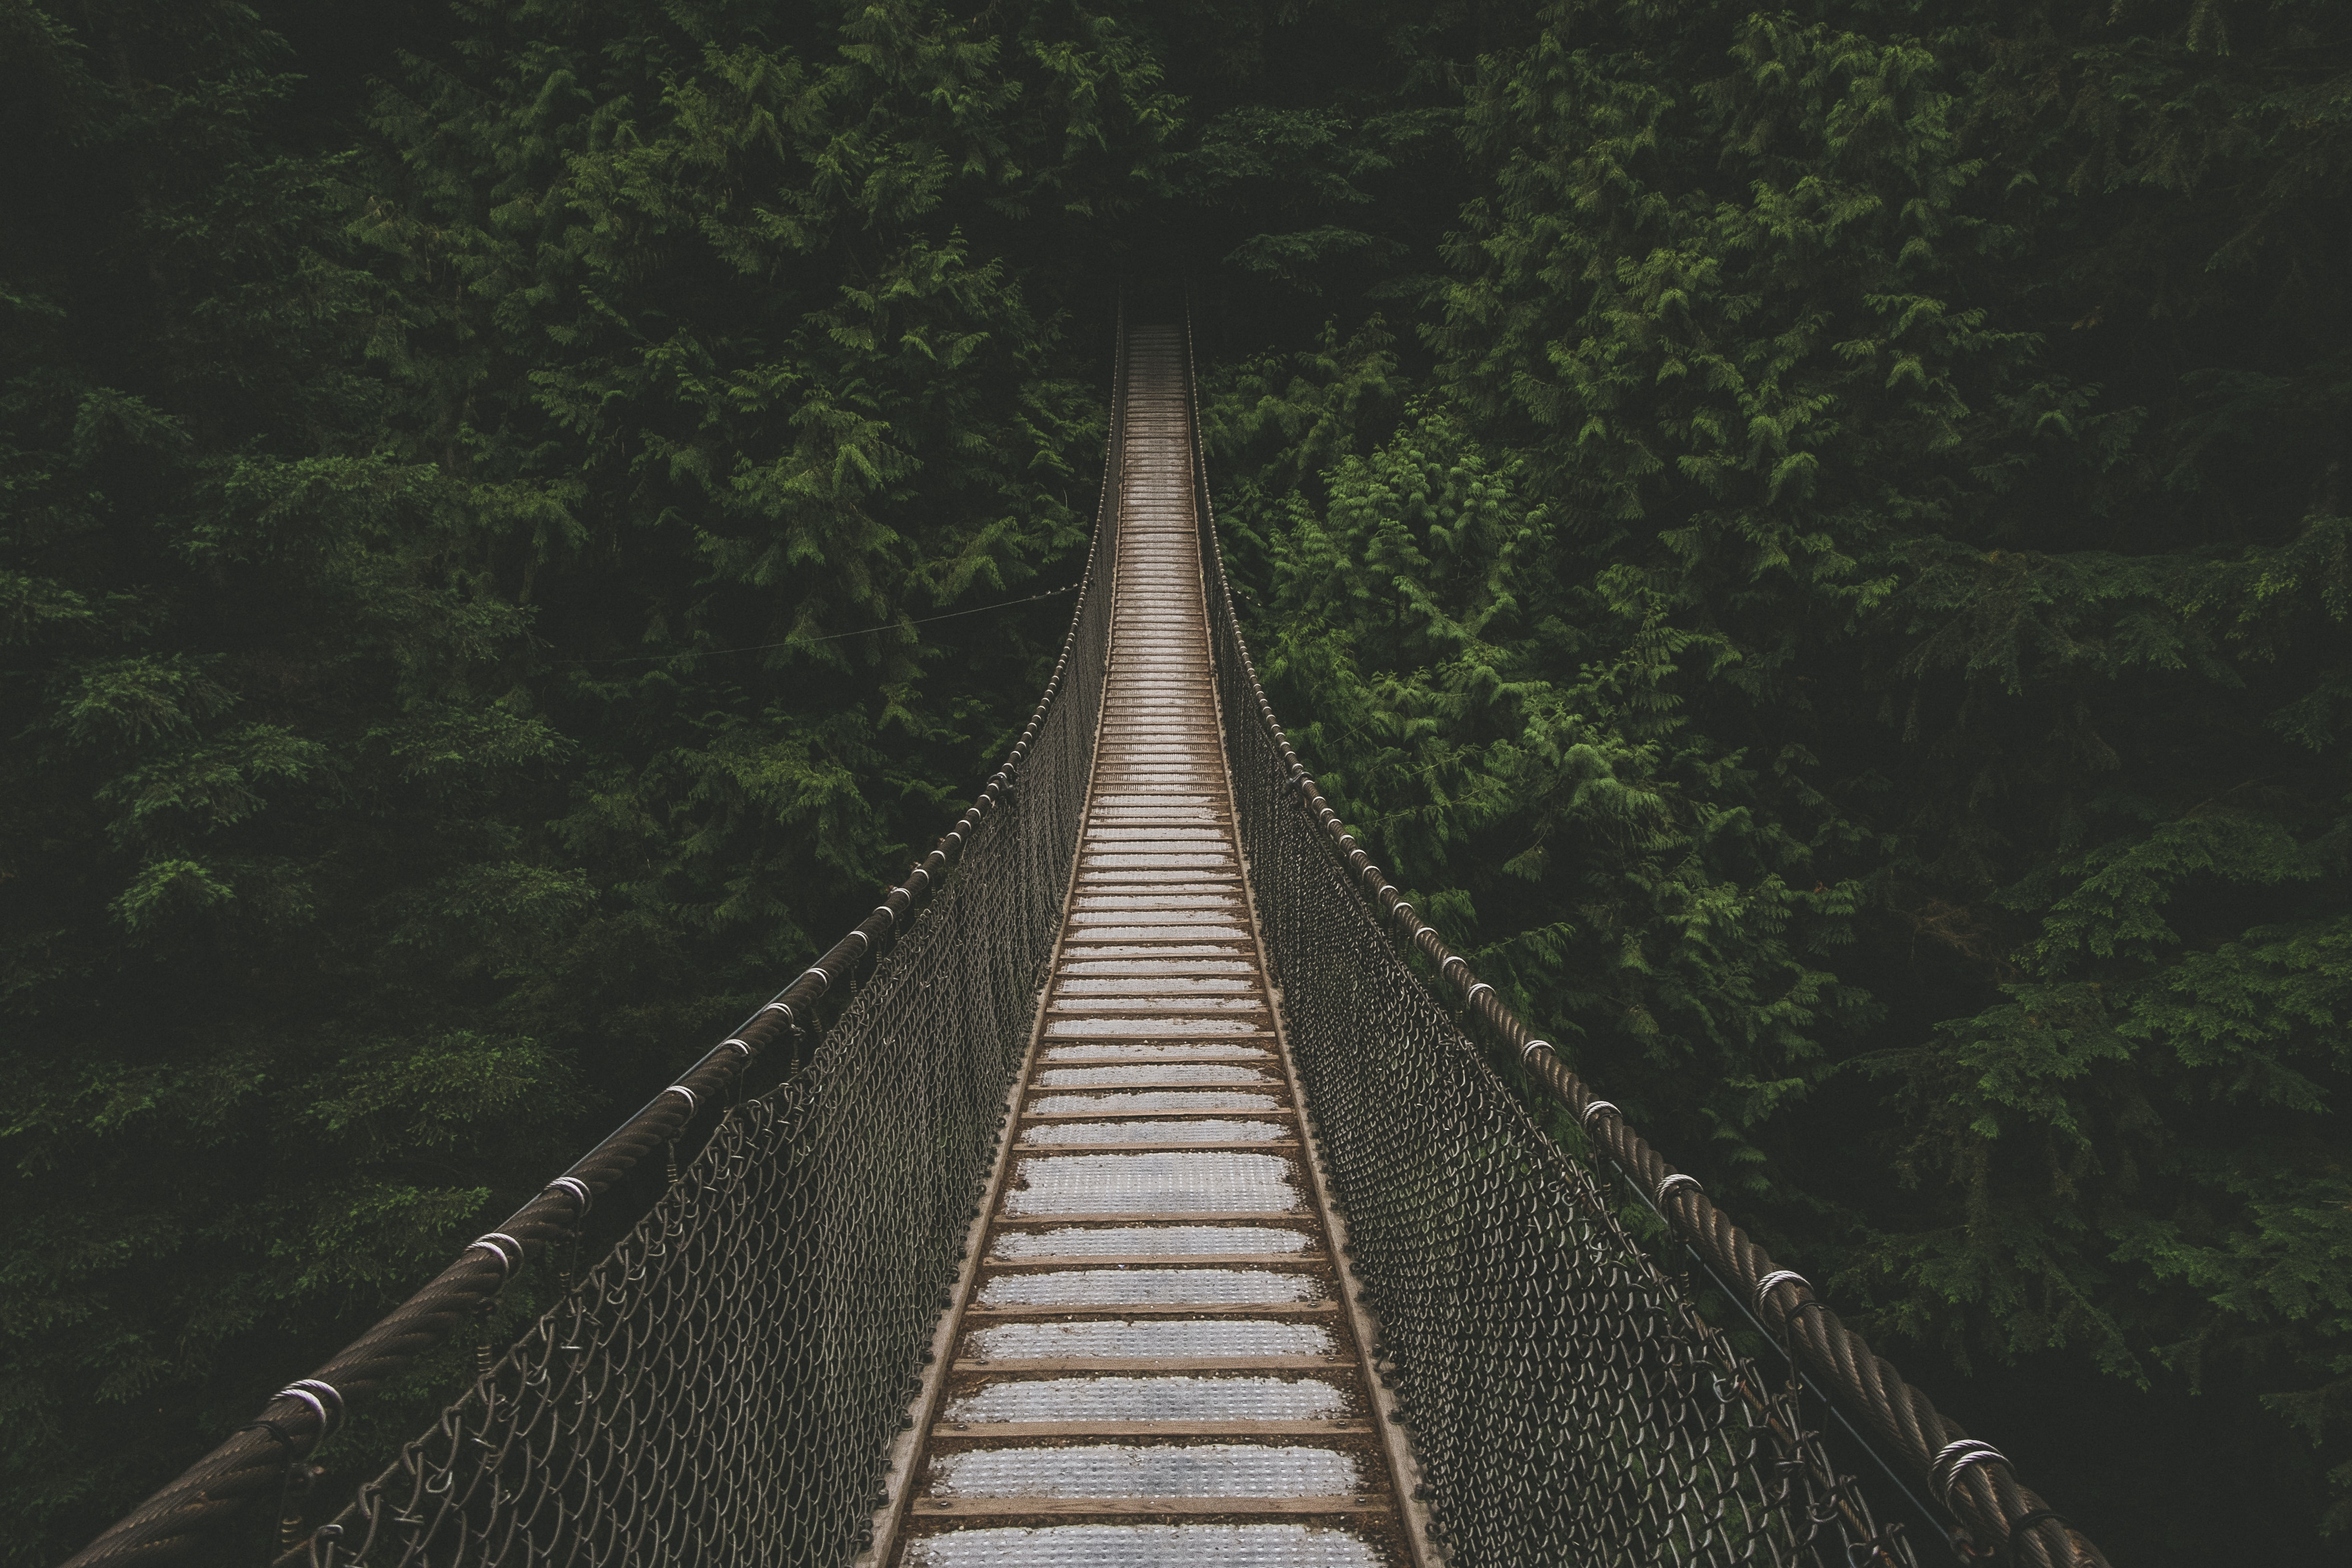 An empty suspension bridge leading to a dense forest